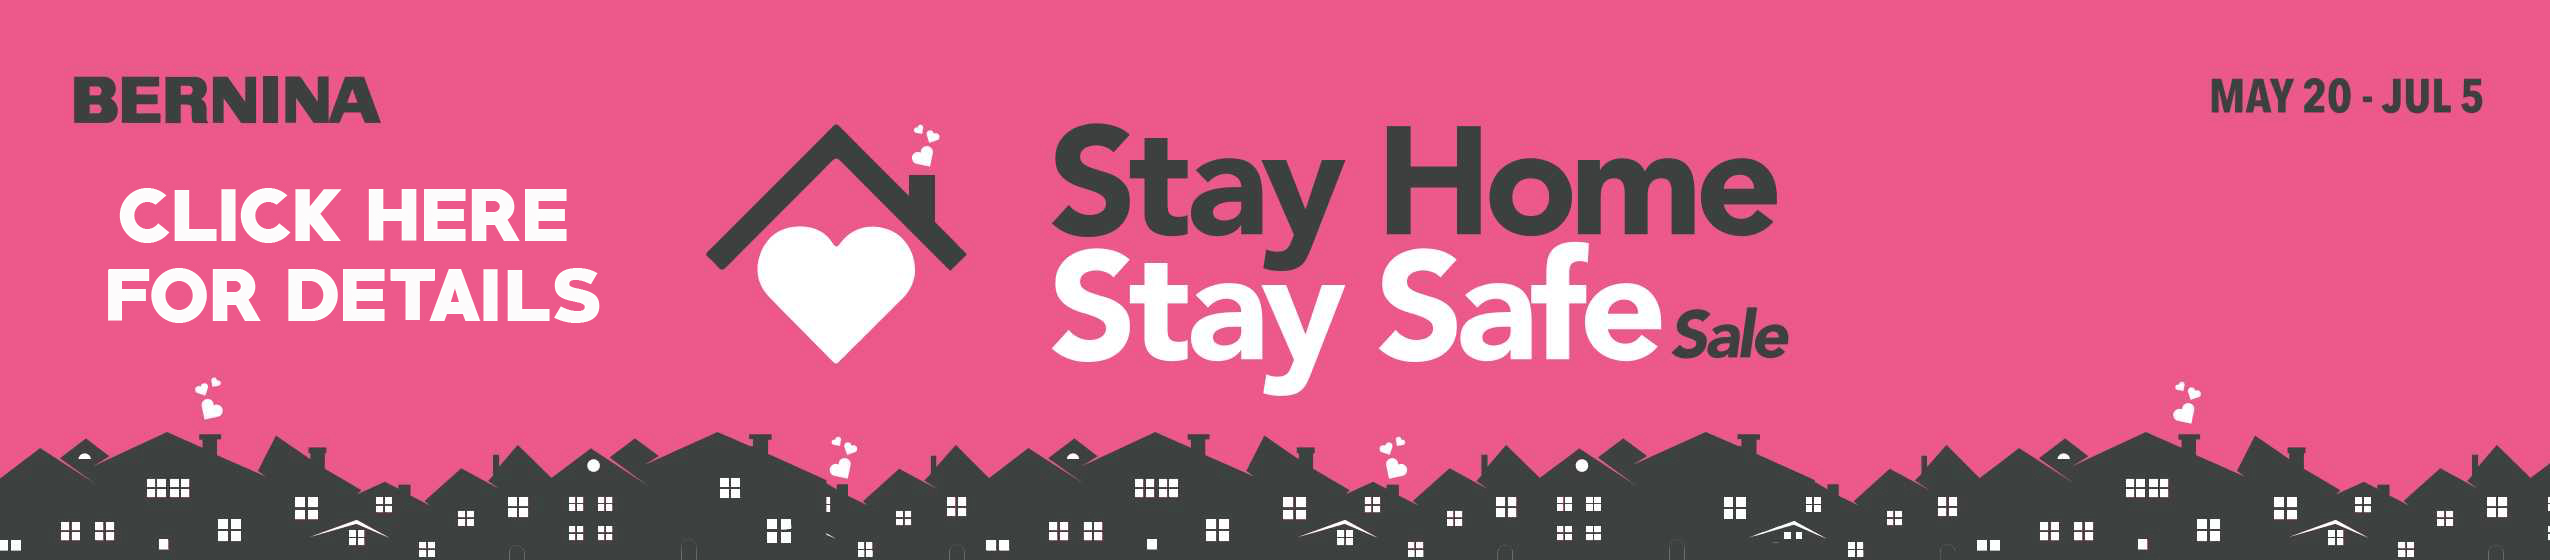 2020-stay-home-stay-save-sale-flyer-click.jpg